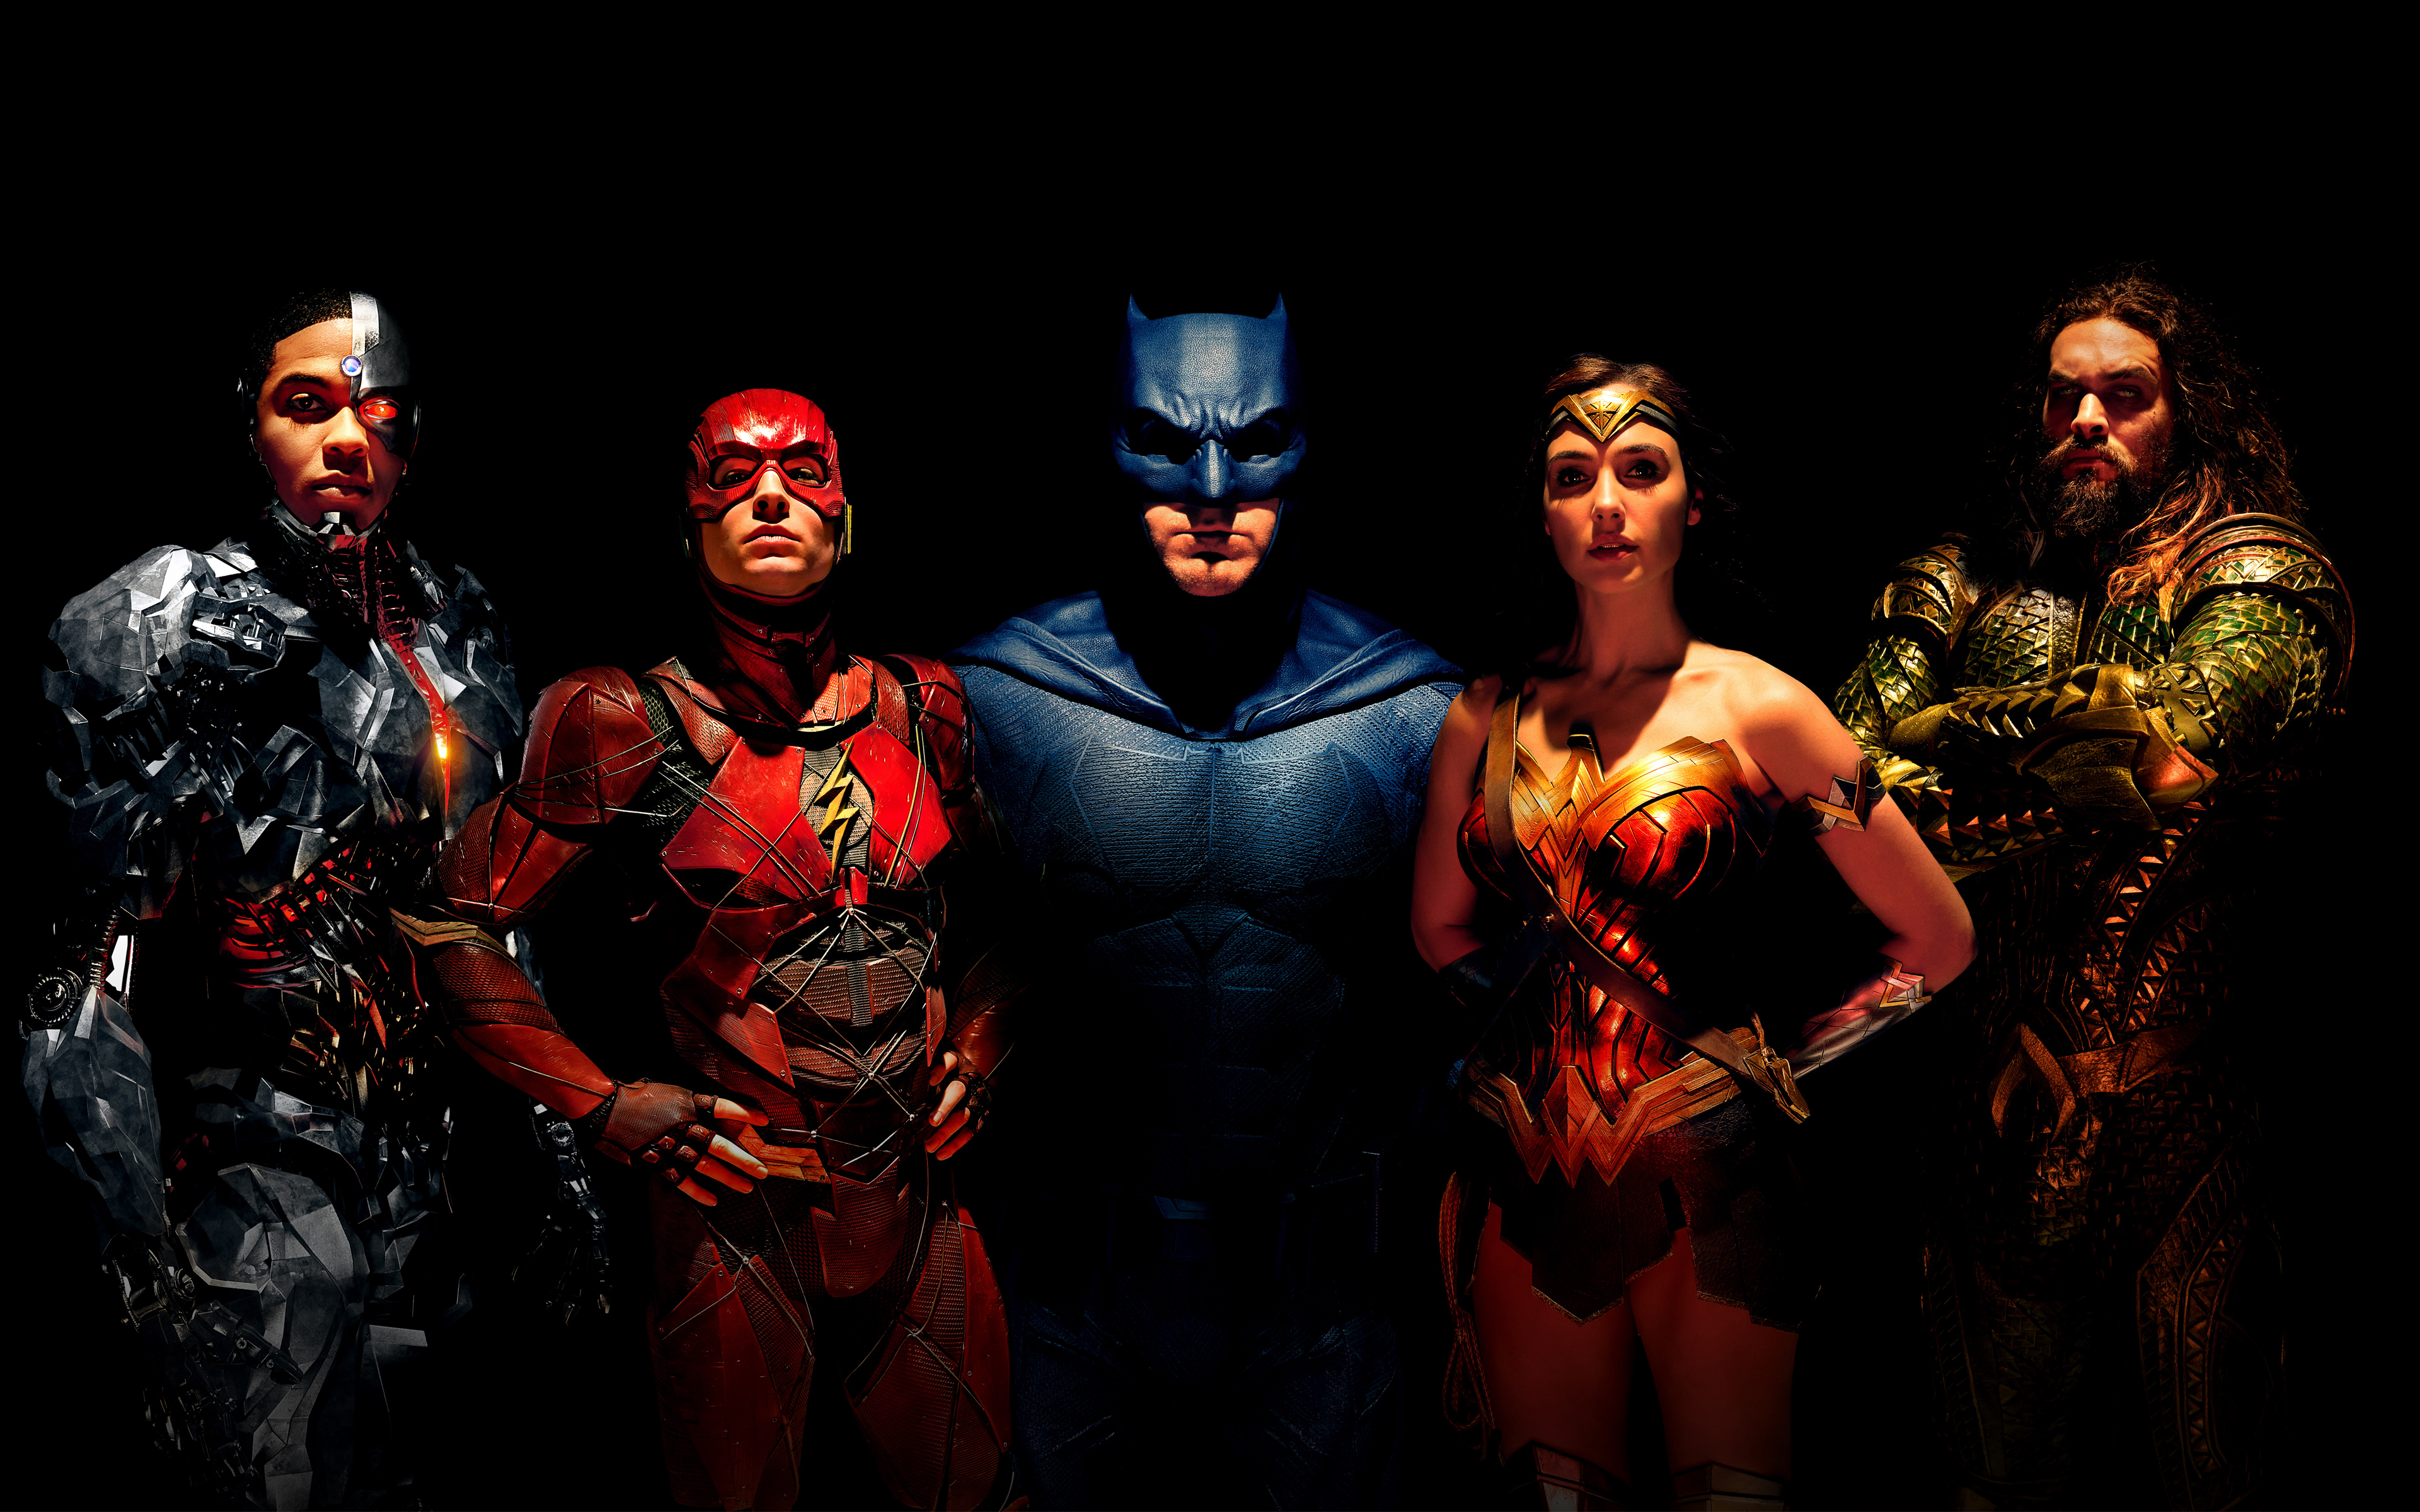 Justice League Movie Hd Movies 4k Wallpapers Images: Justice League 2017 4k Unite The League, HD Movies, 4k